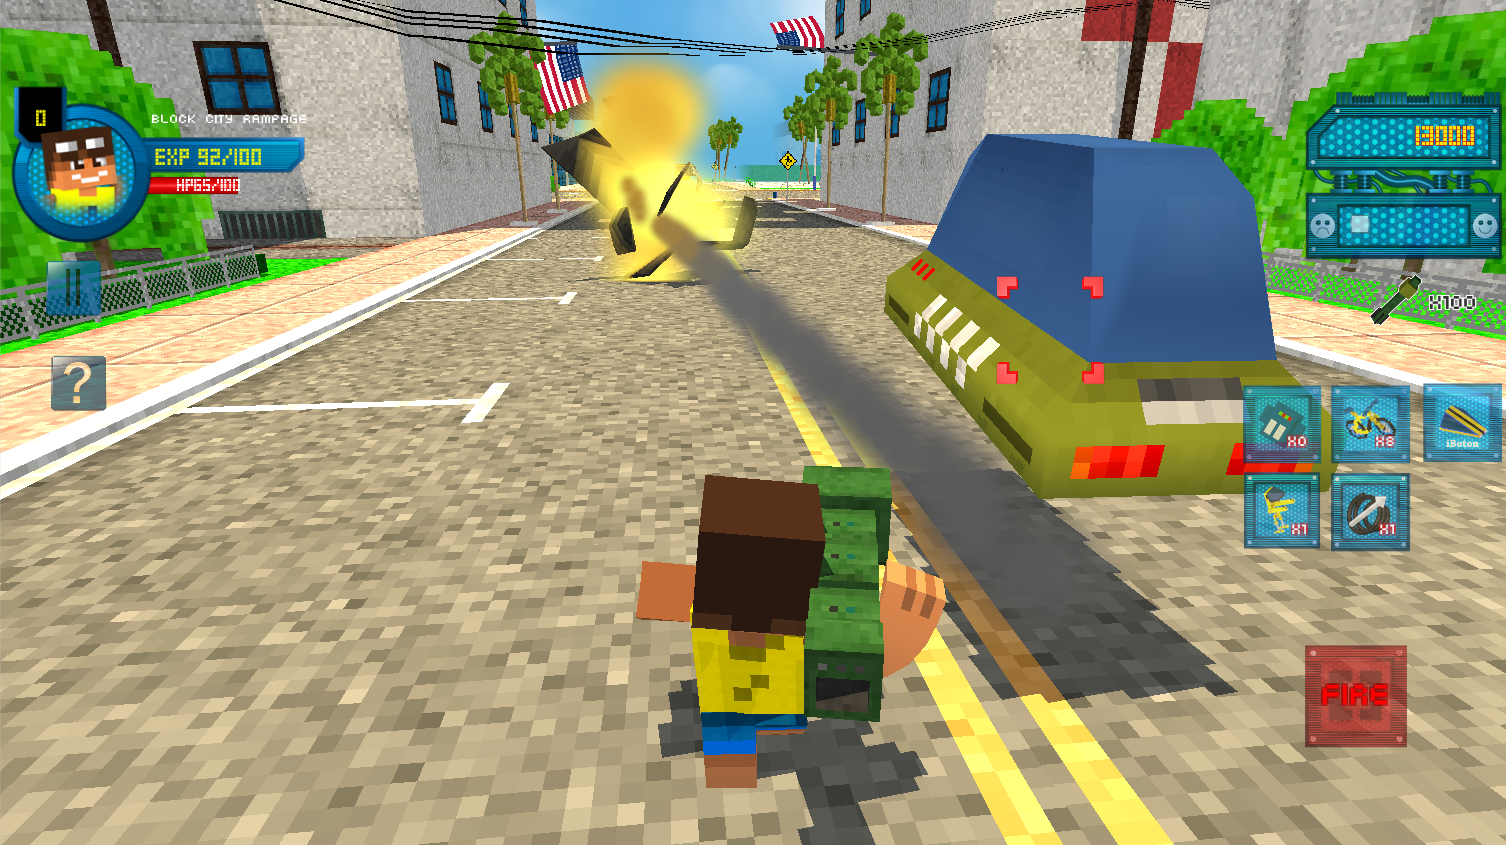 Block City Rampage Screenshot 1